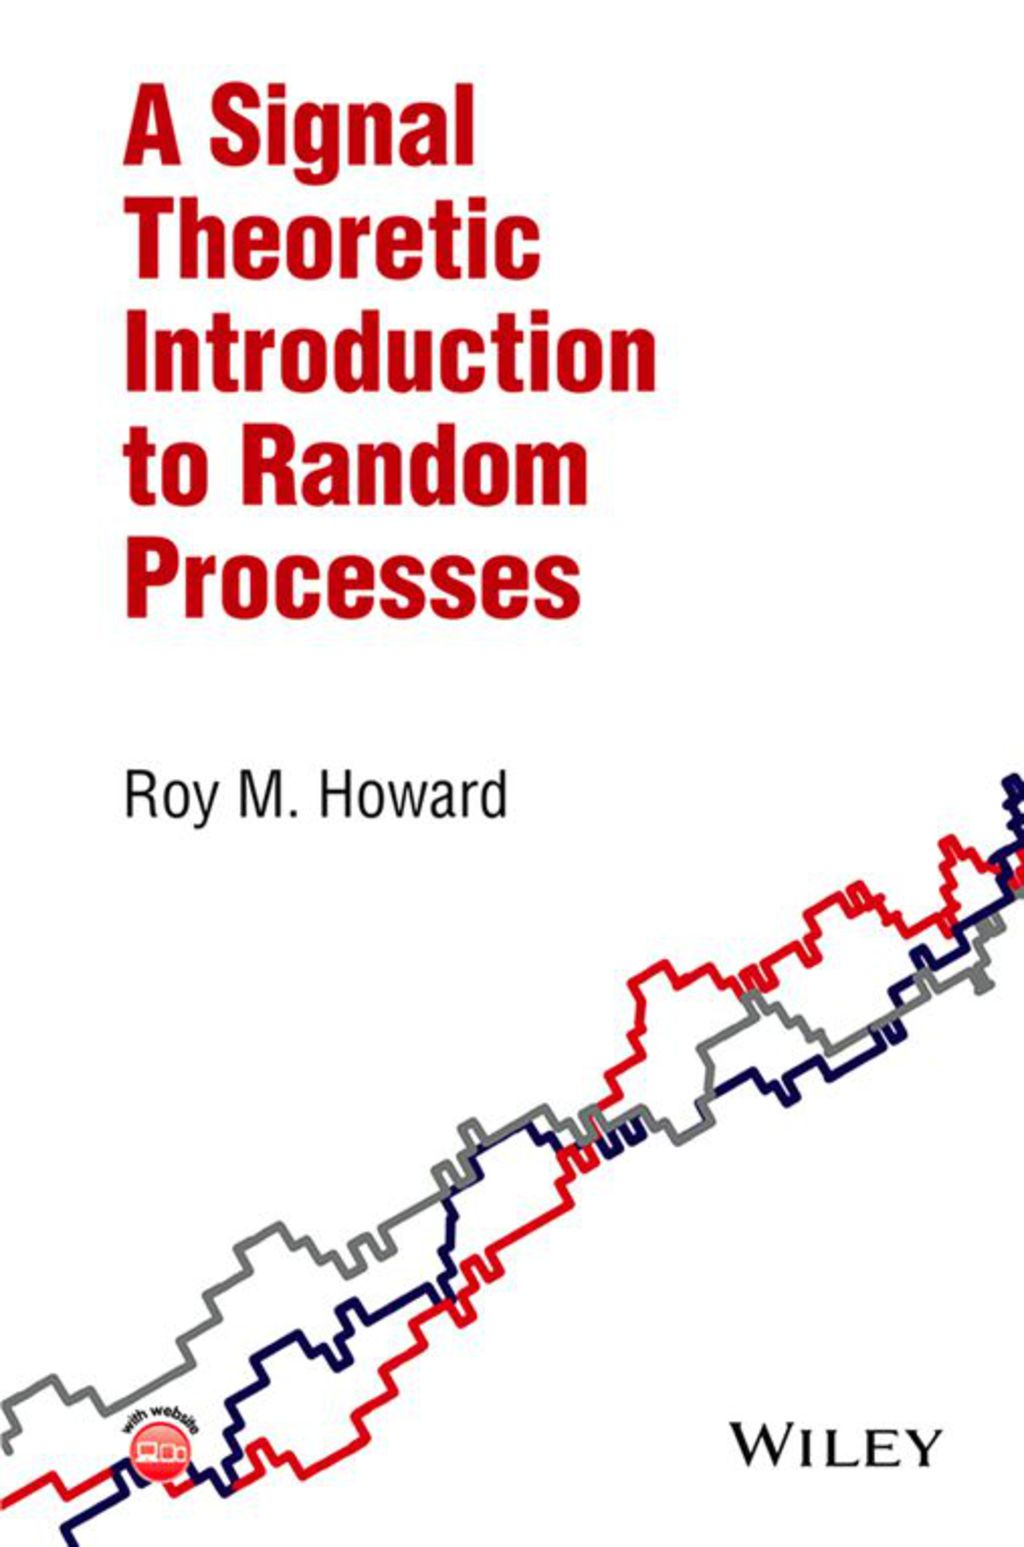 A Signal Theoretic Introduction to Random Processes (ebook) eBooks